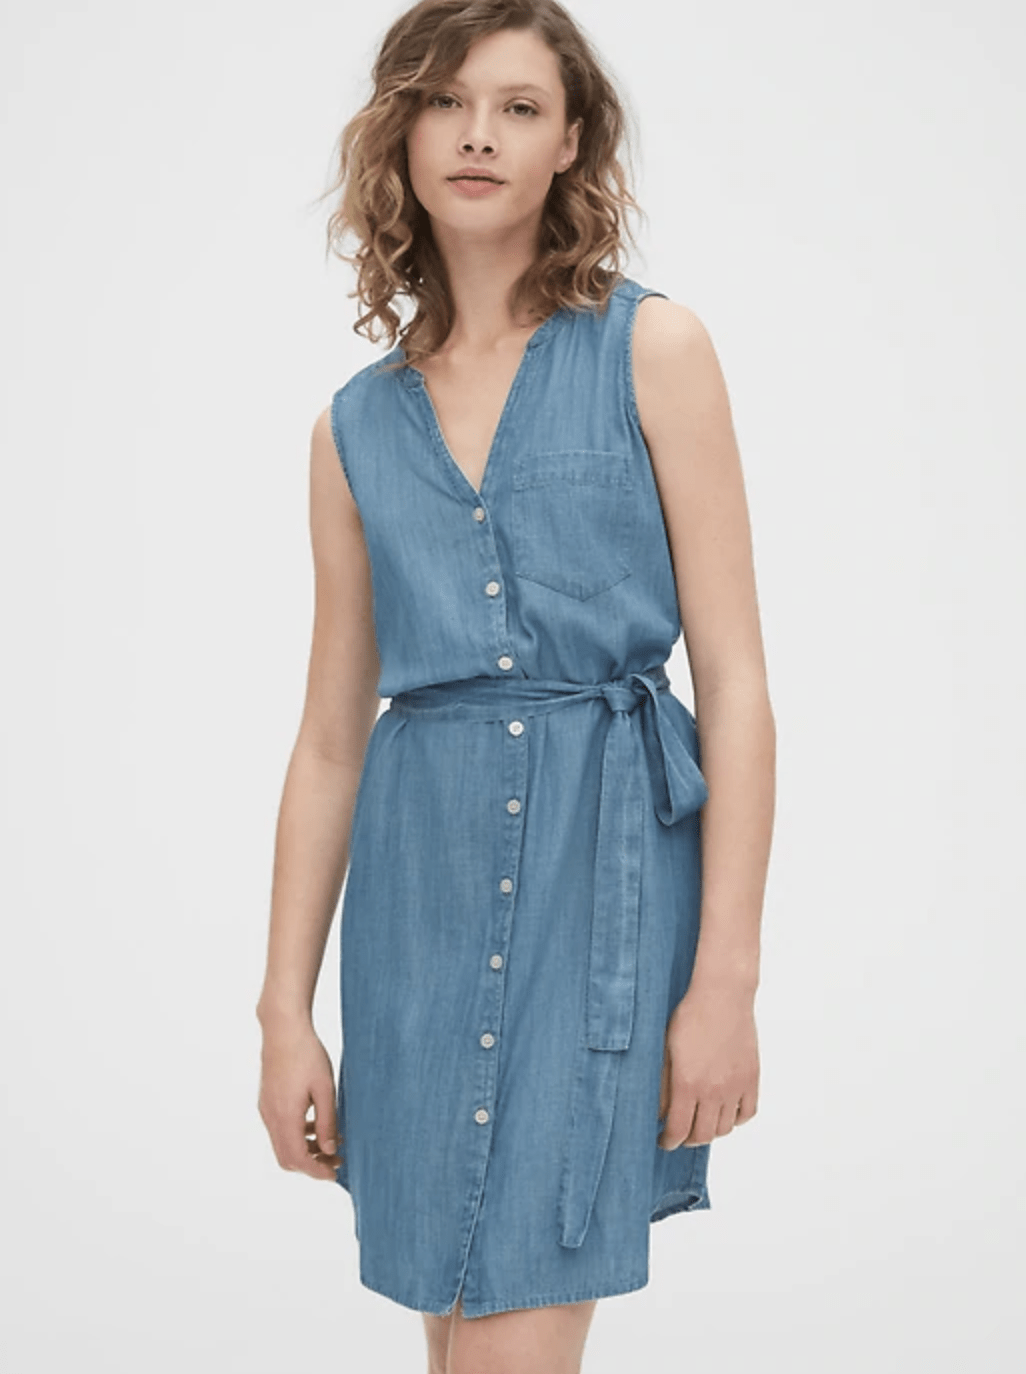 Sleeveless Shirtdress